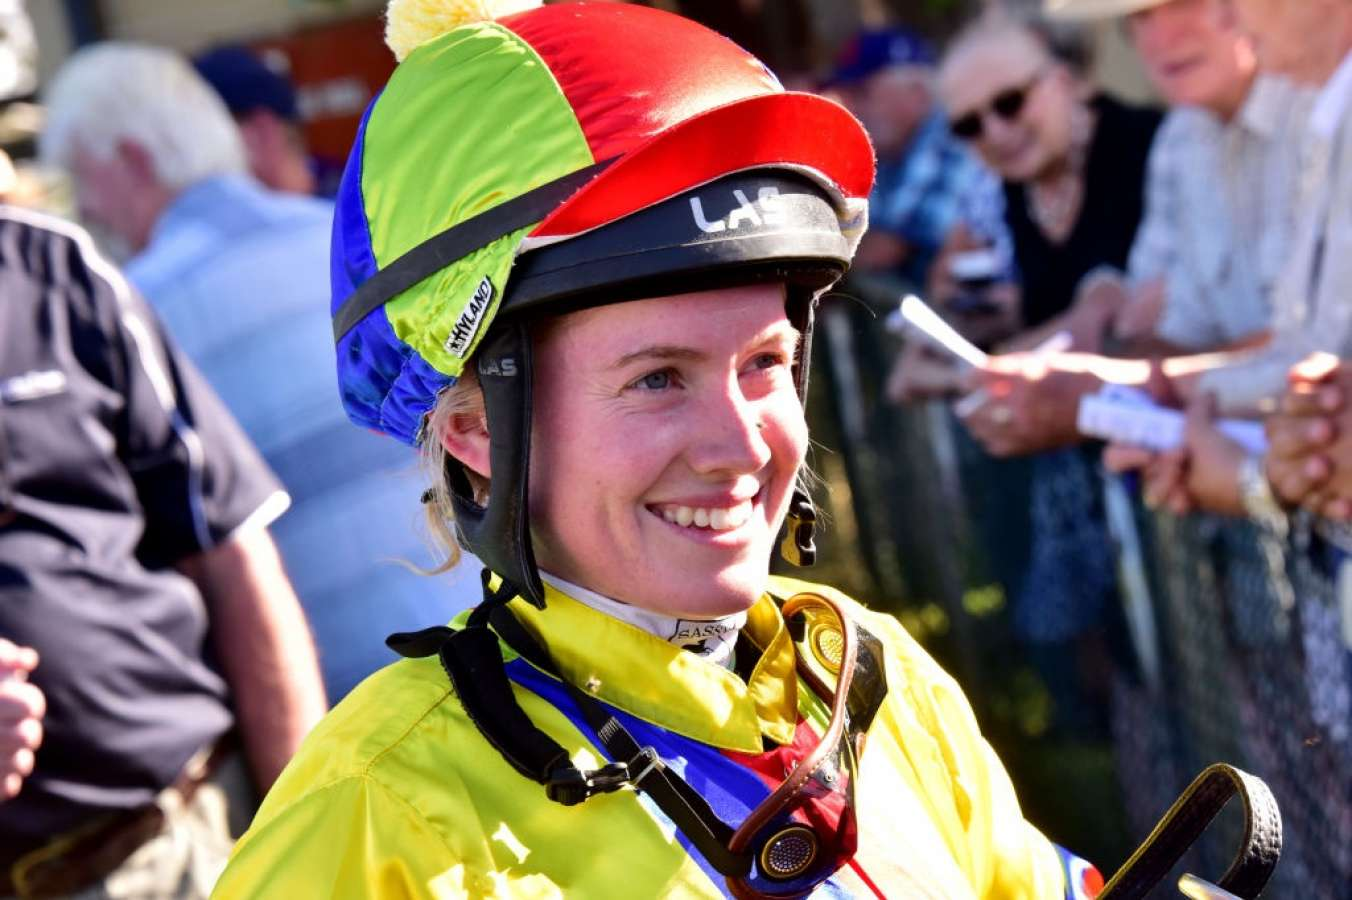 Young jockey dies in trackwork fall at Cranbourne